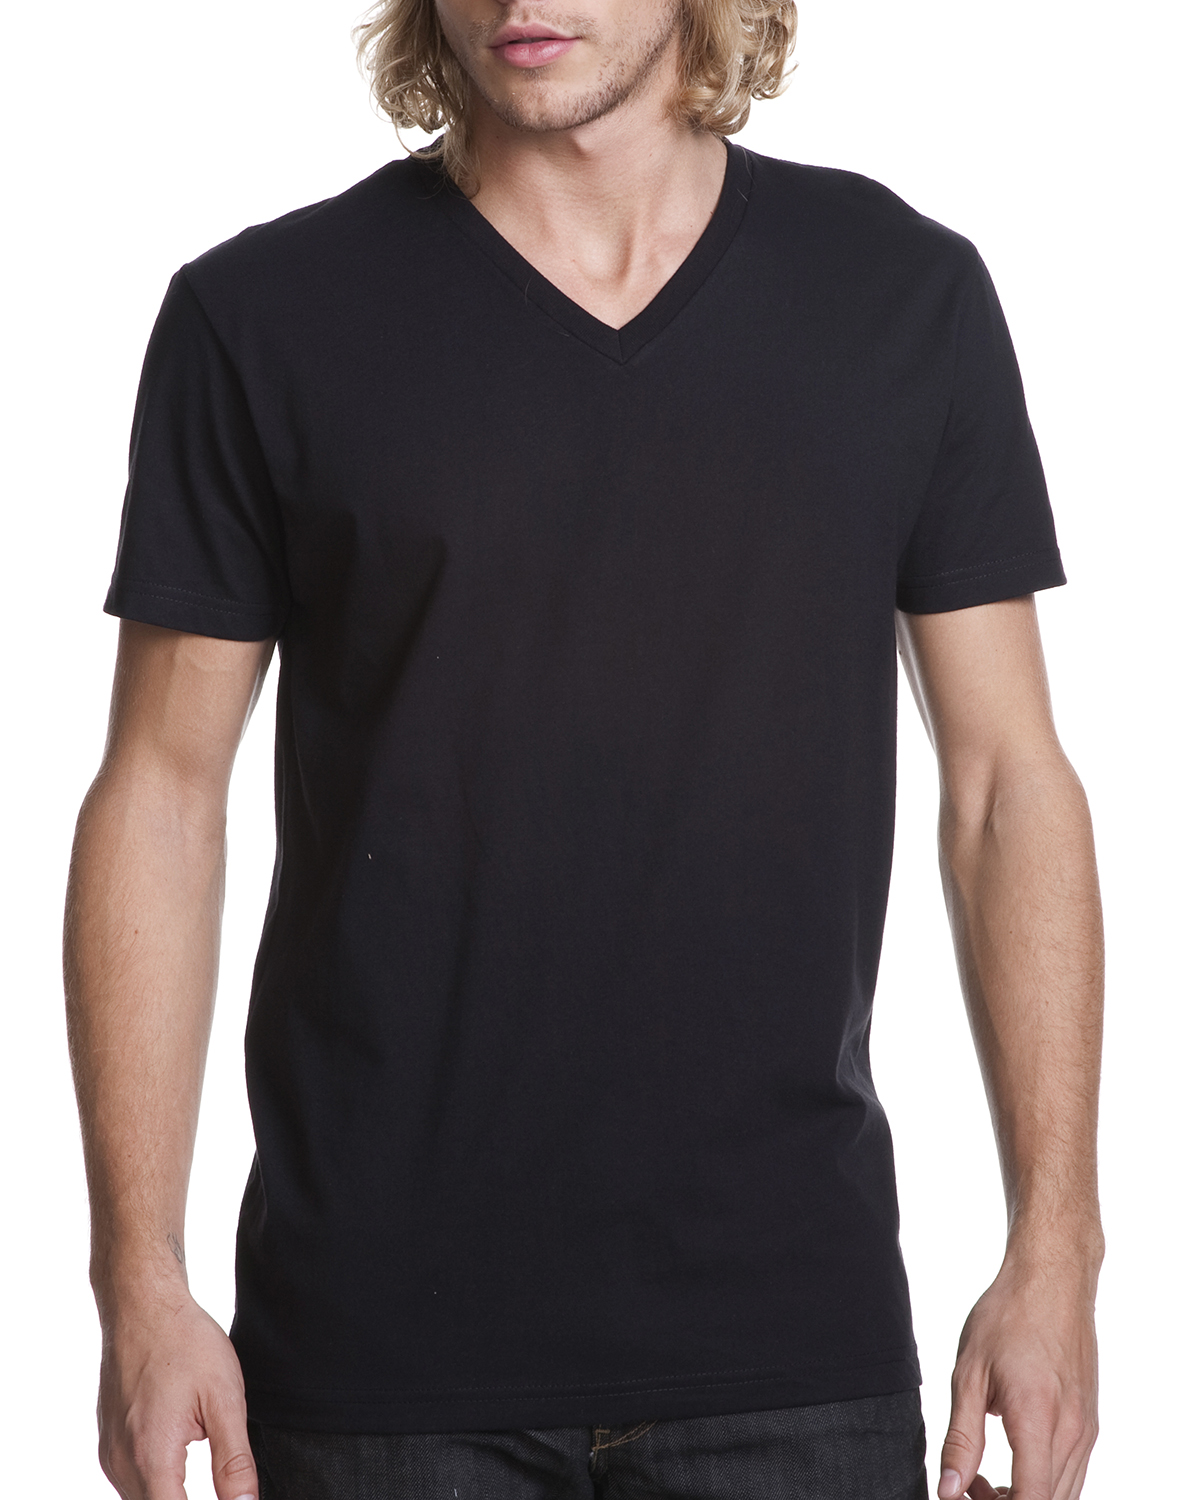 N3200 Next Level Fitted Short-Sleeve V